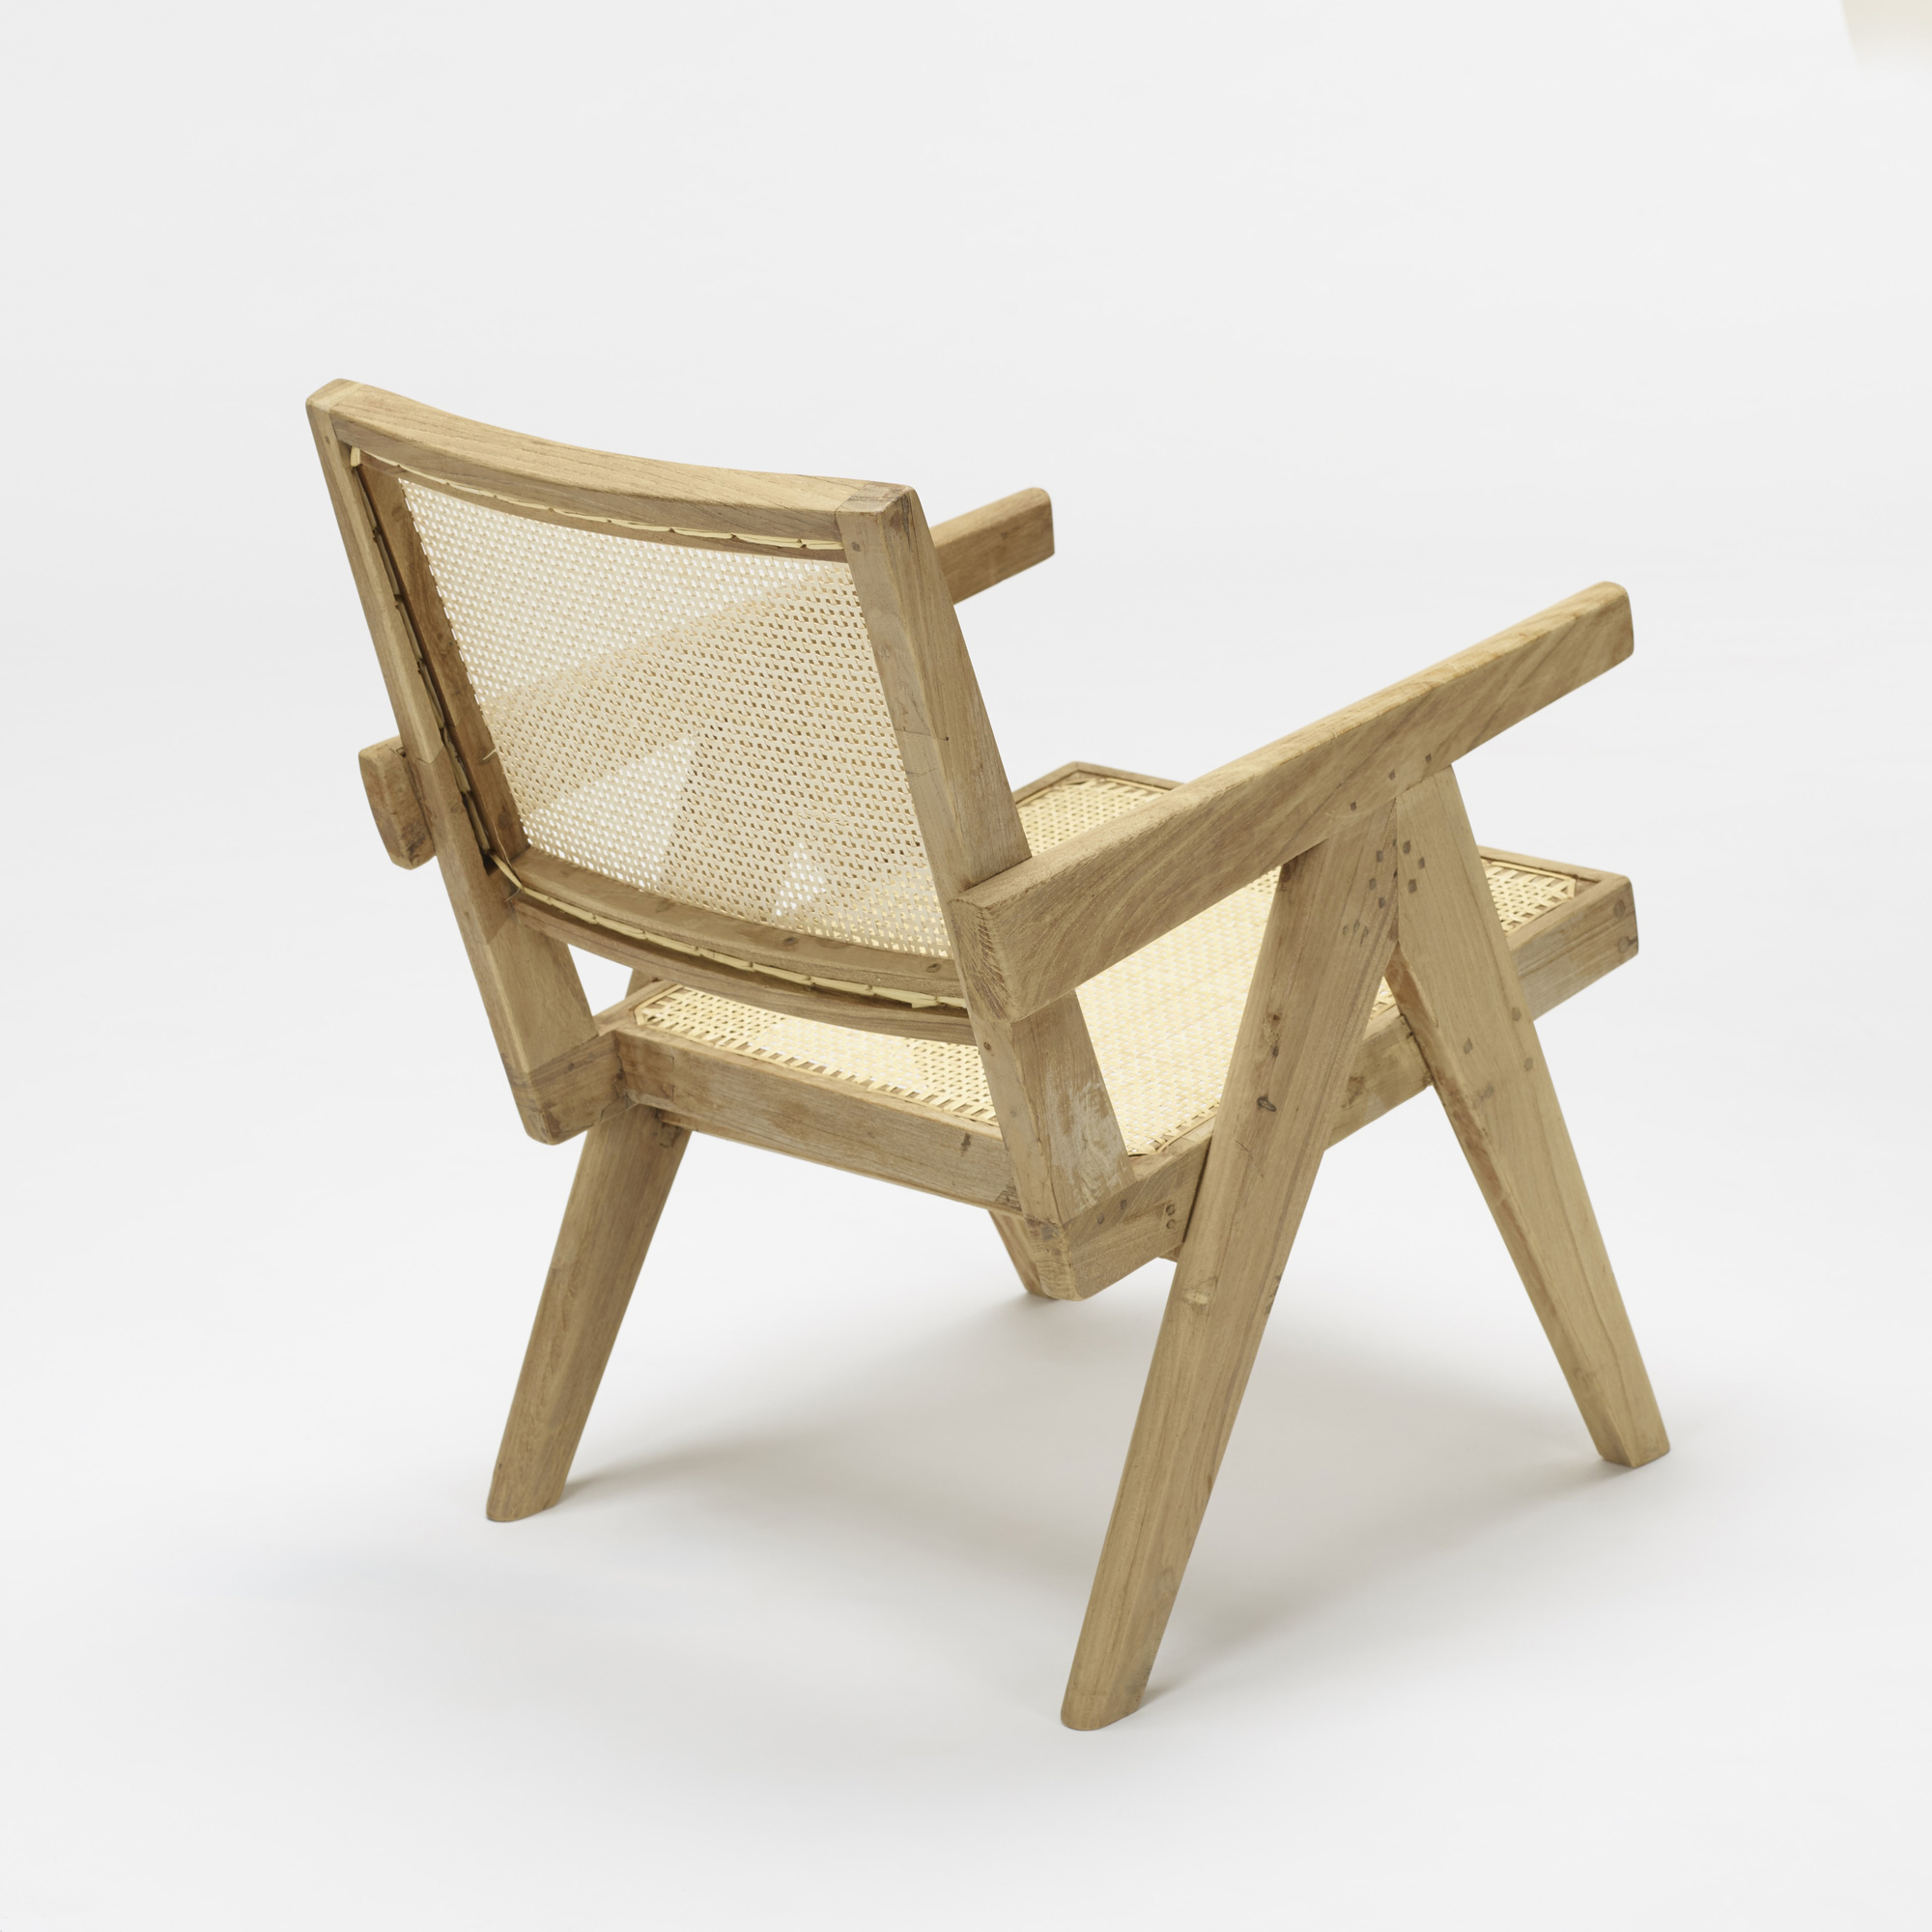 113: Pierre Jeanneret / Easy armchairs from Chandigarh, set of two (3 of 4)